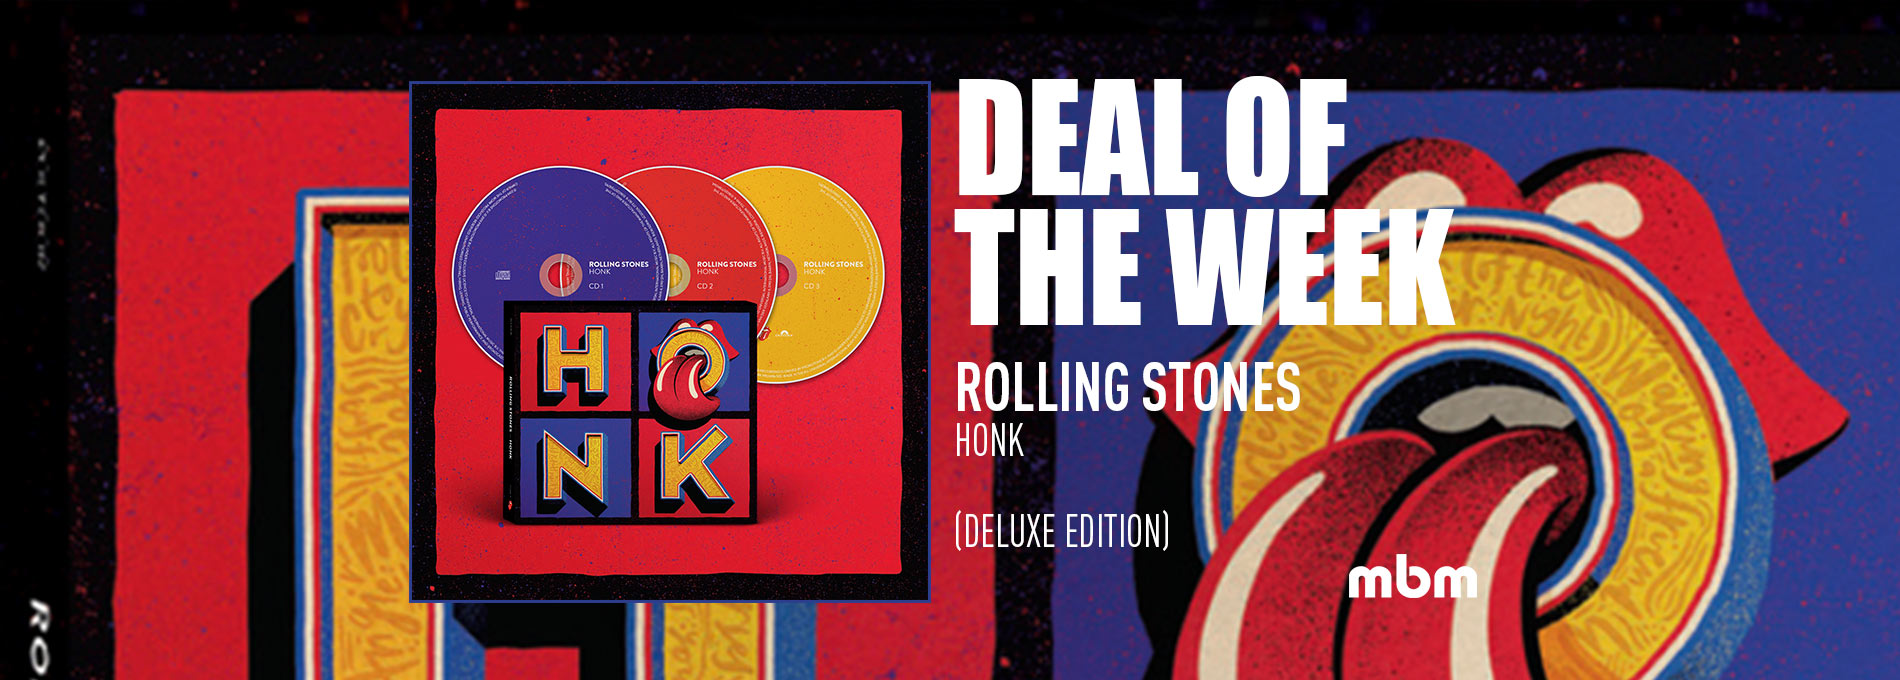 Deal Of The Week: ROLLING STONES - Honk (Deluxe Edition)